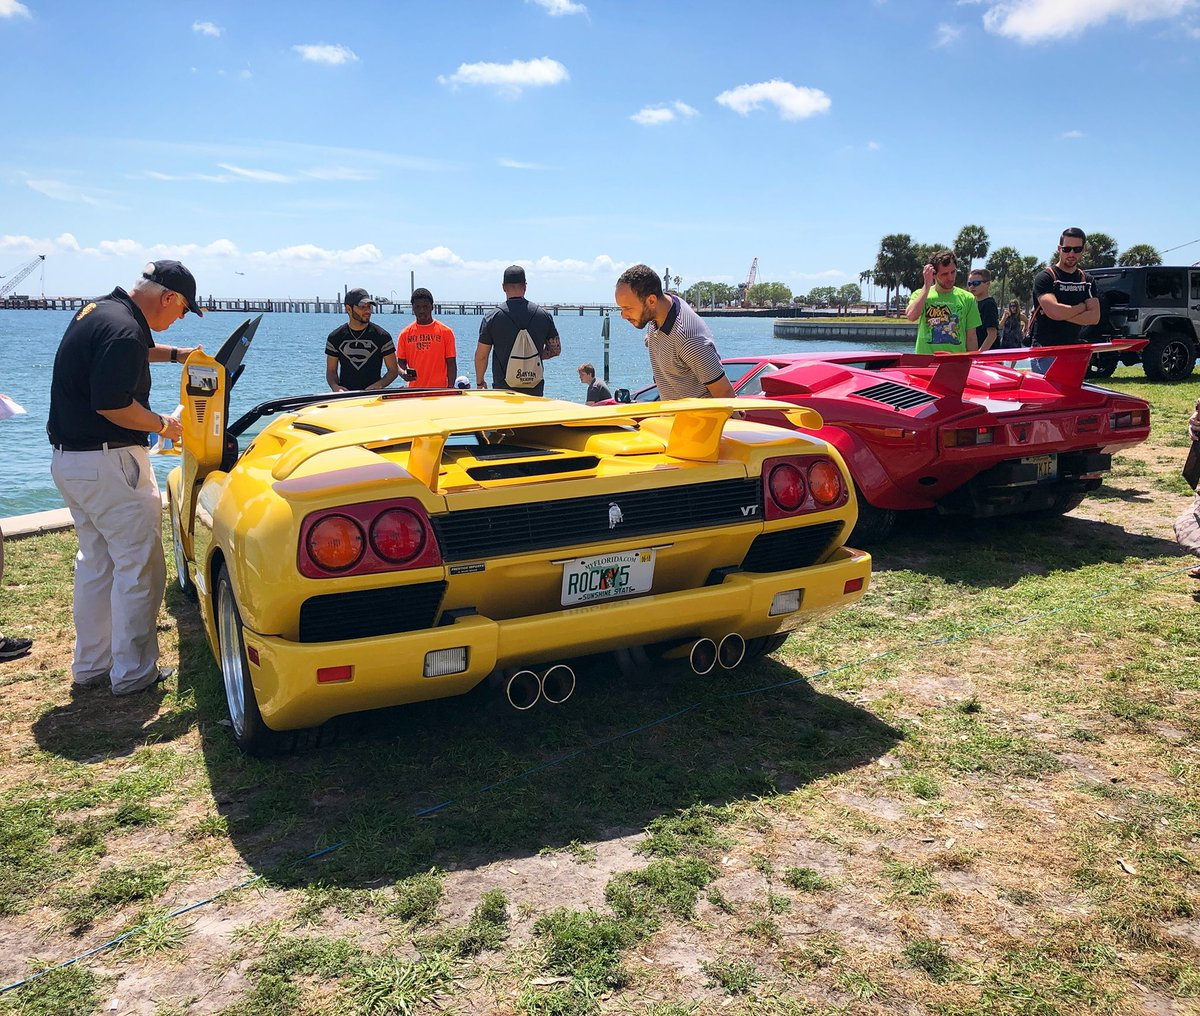 #Lamborghini #diablo #countach #supercars #exotics #sportscars #carshow  #classics #festivalsofspeed #stpetersburg #stpete #florida #driveflorida ...